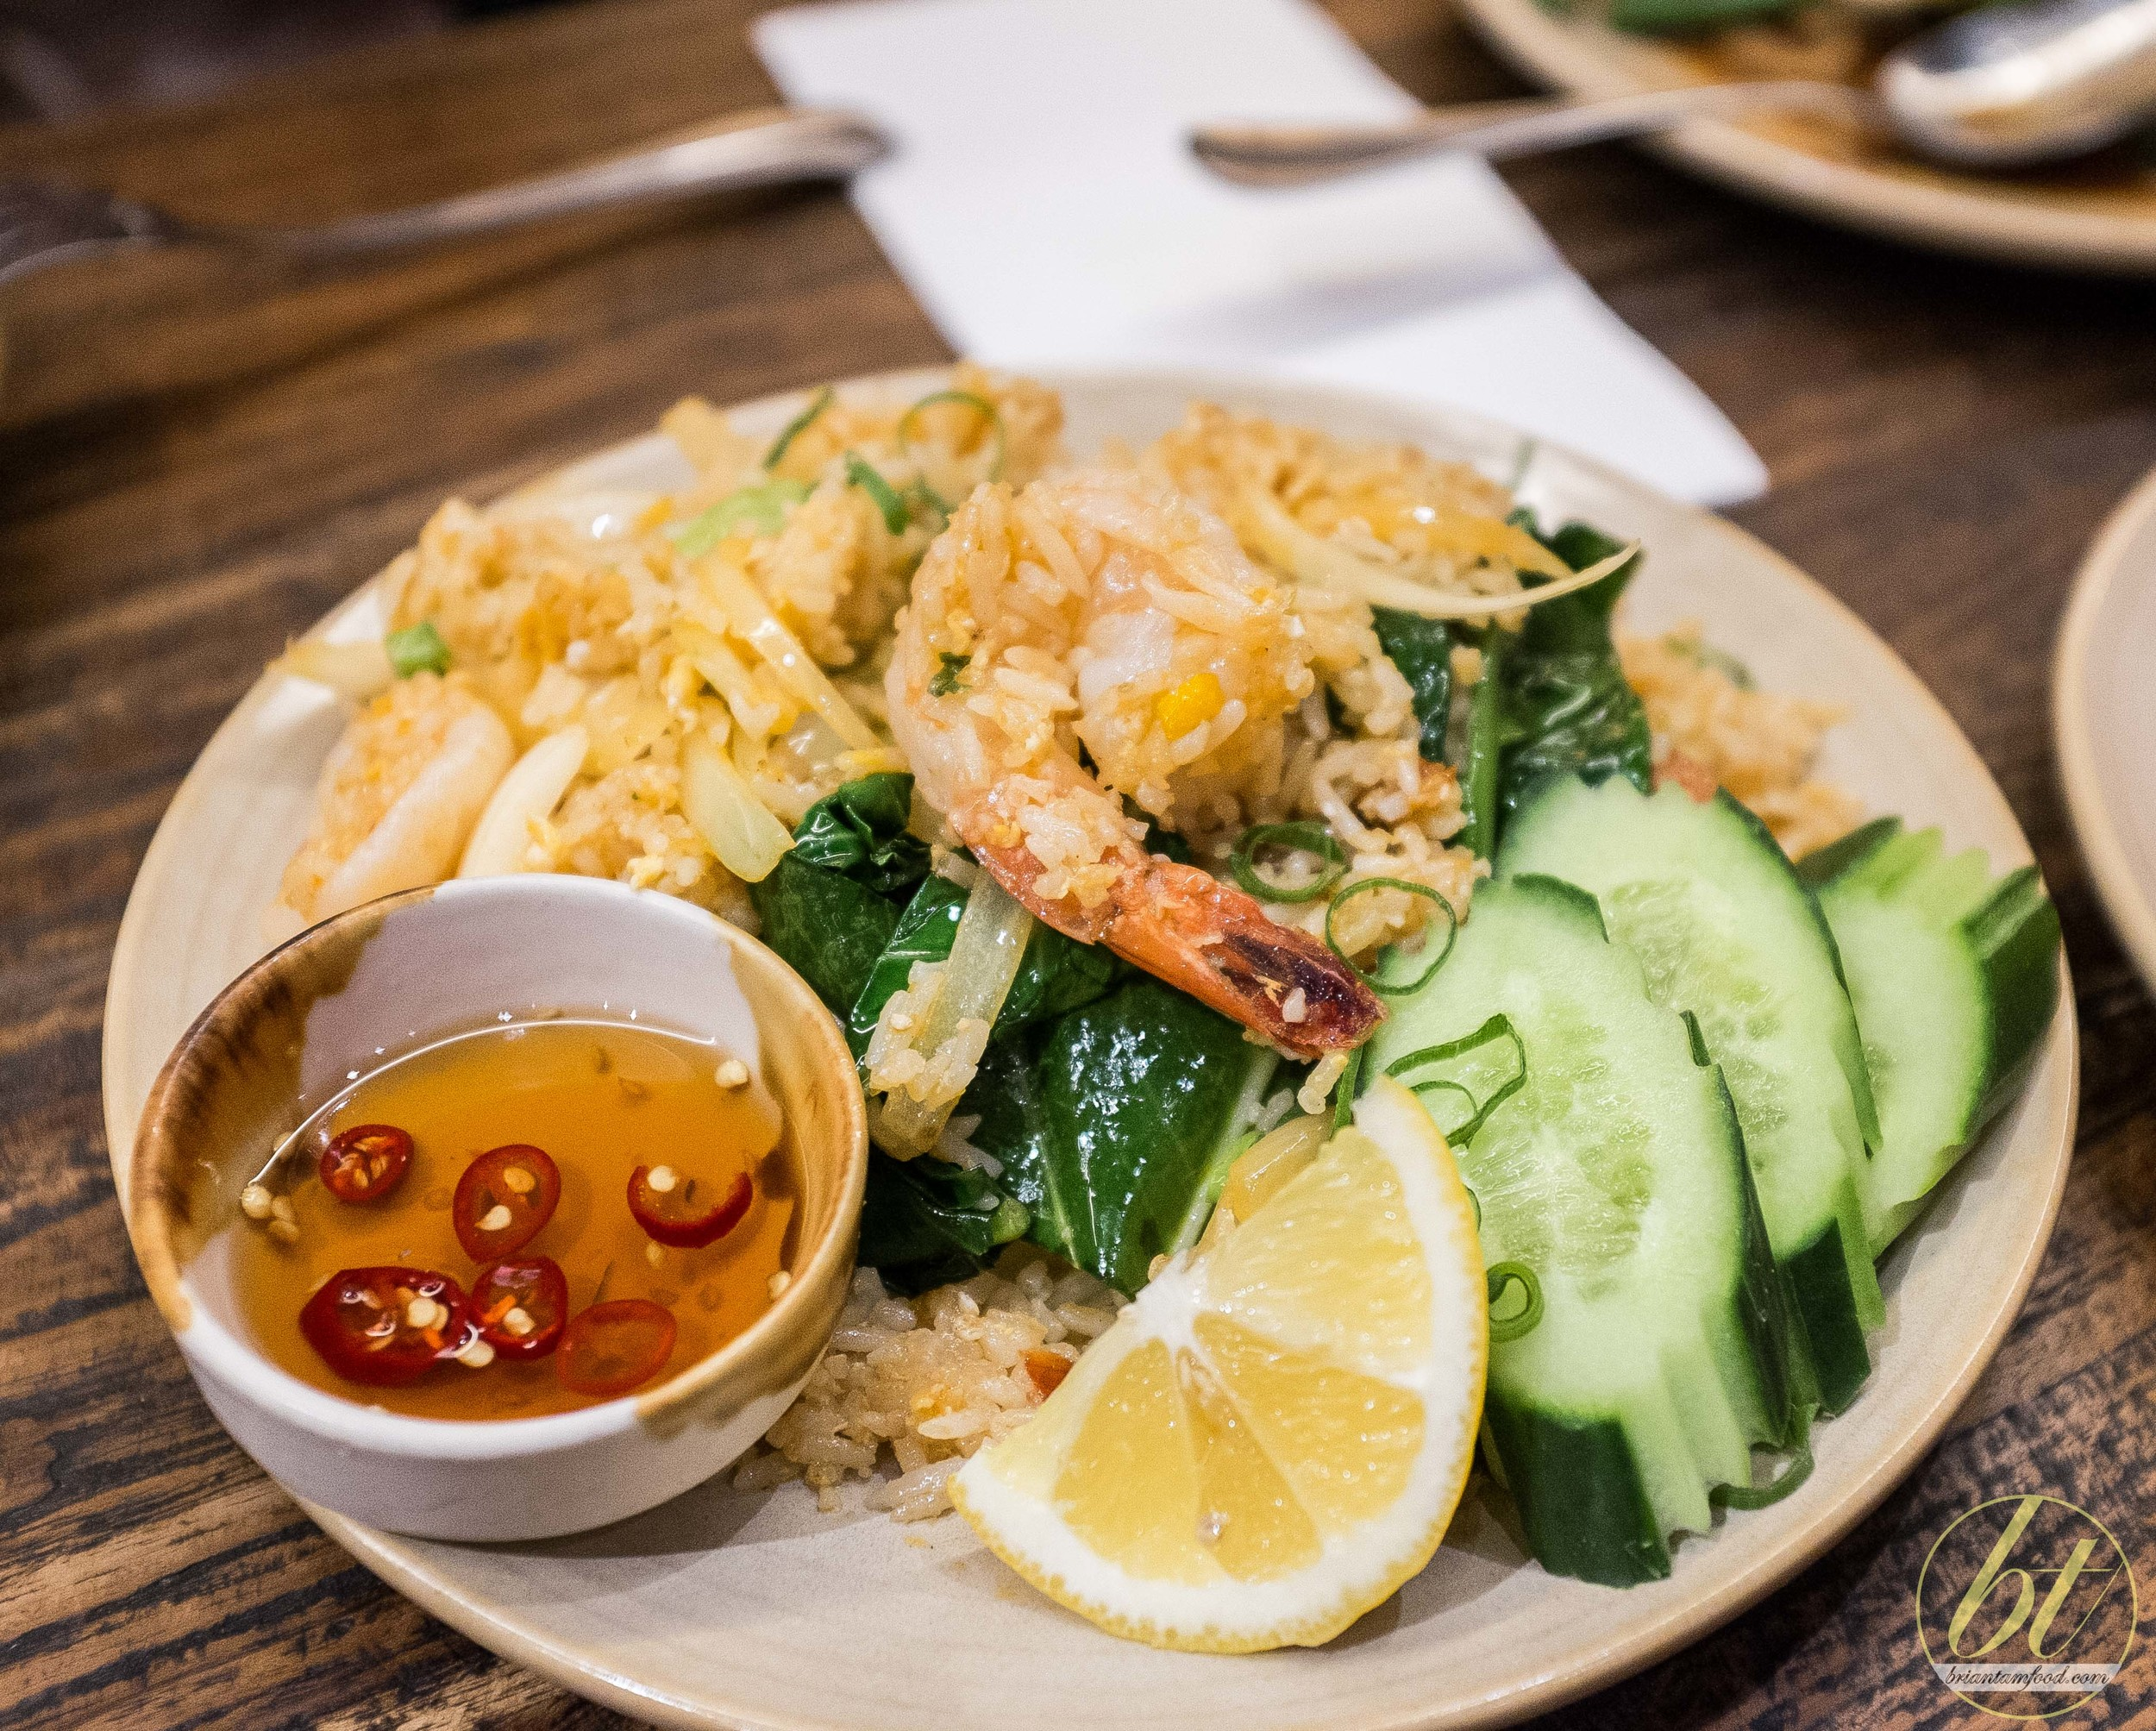 Prawn fried rice ($19)